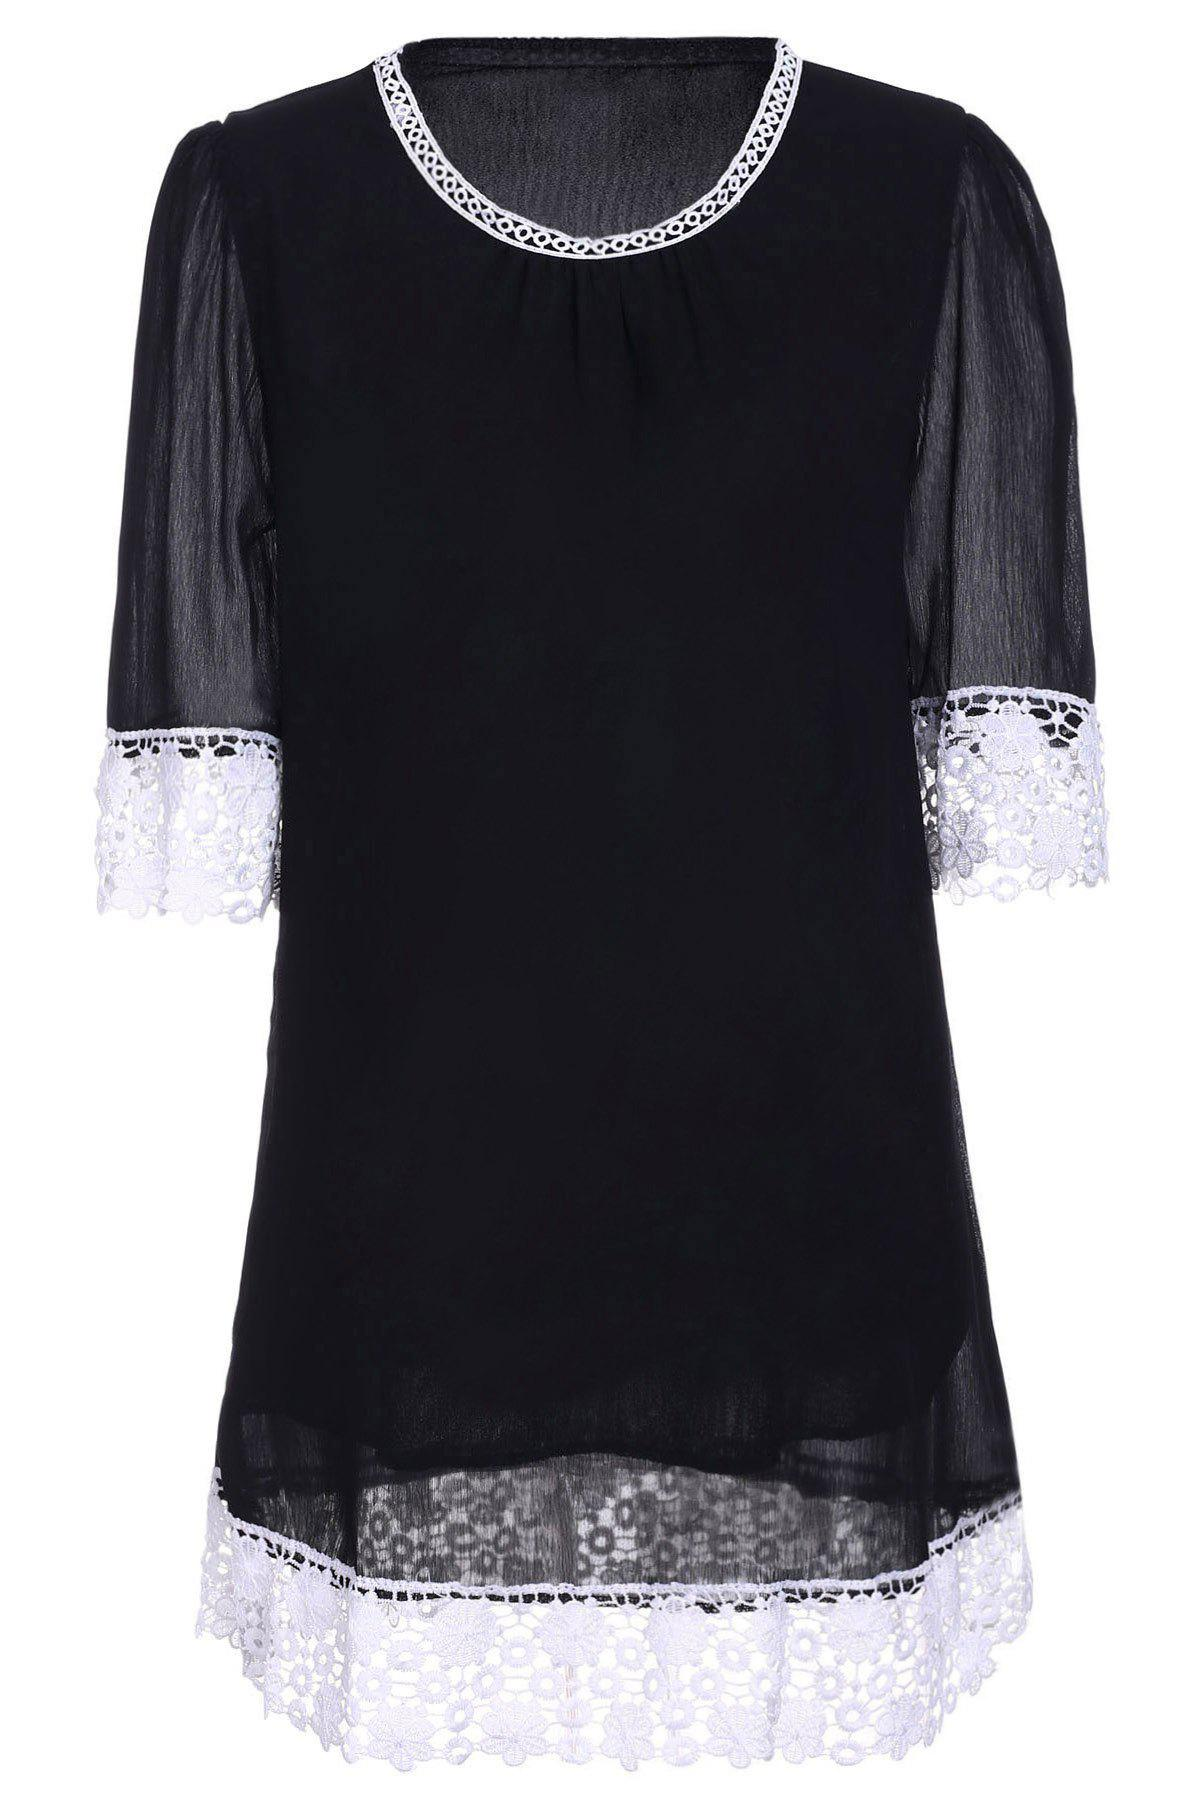 Casual Lace Panel Mini Shift Dress - S BLACK